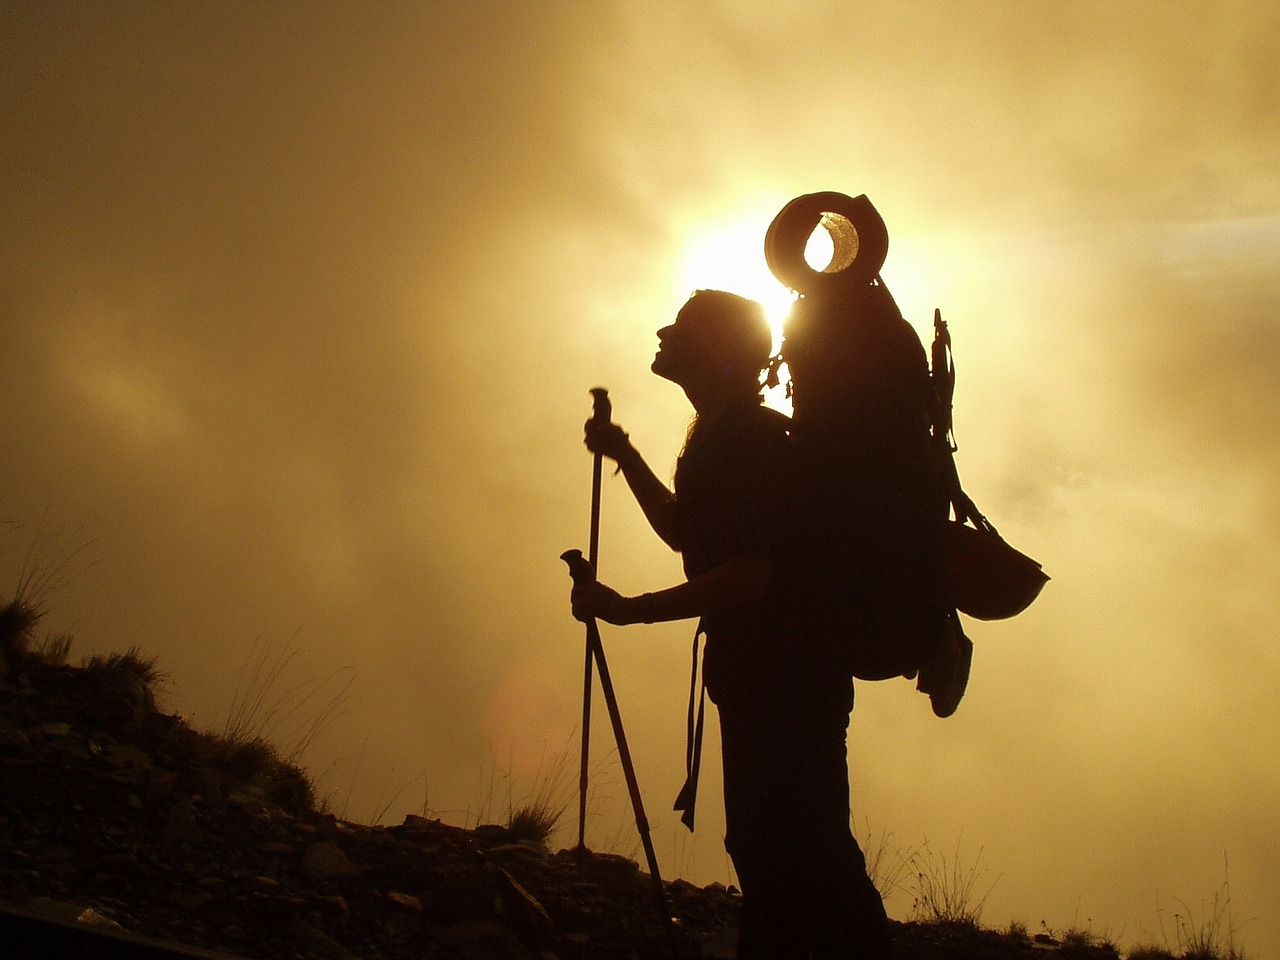 Hiking Gear: Different Types Of Hiking Gear